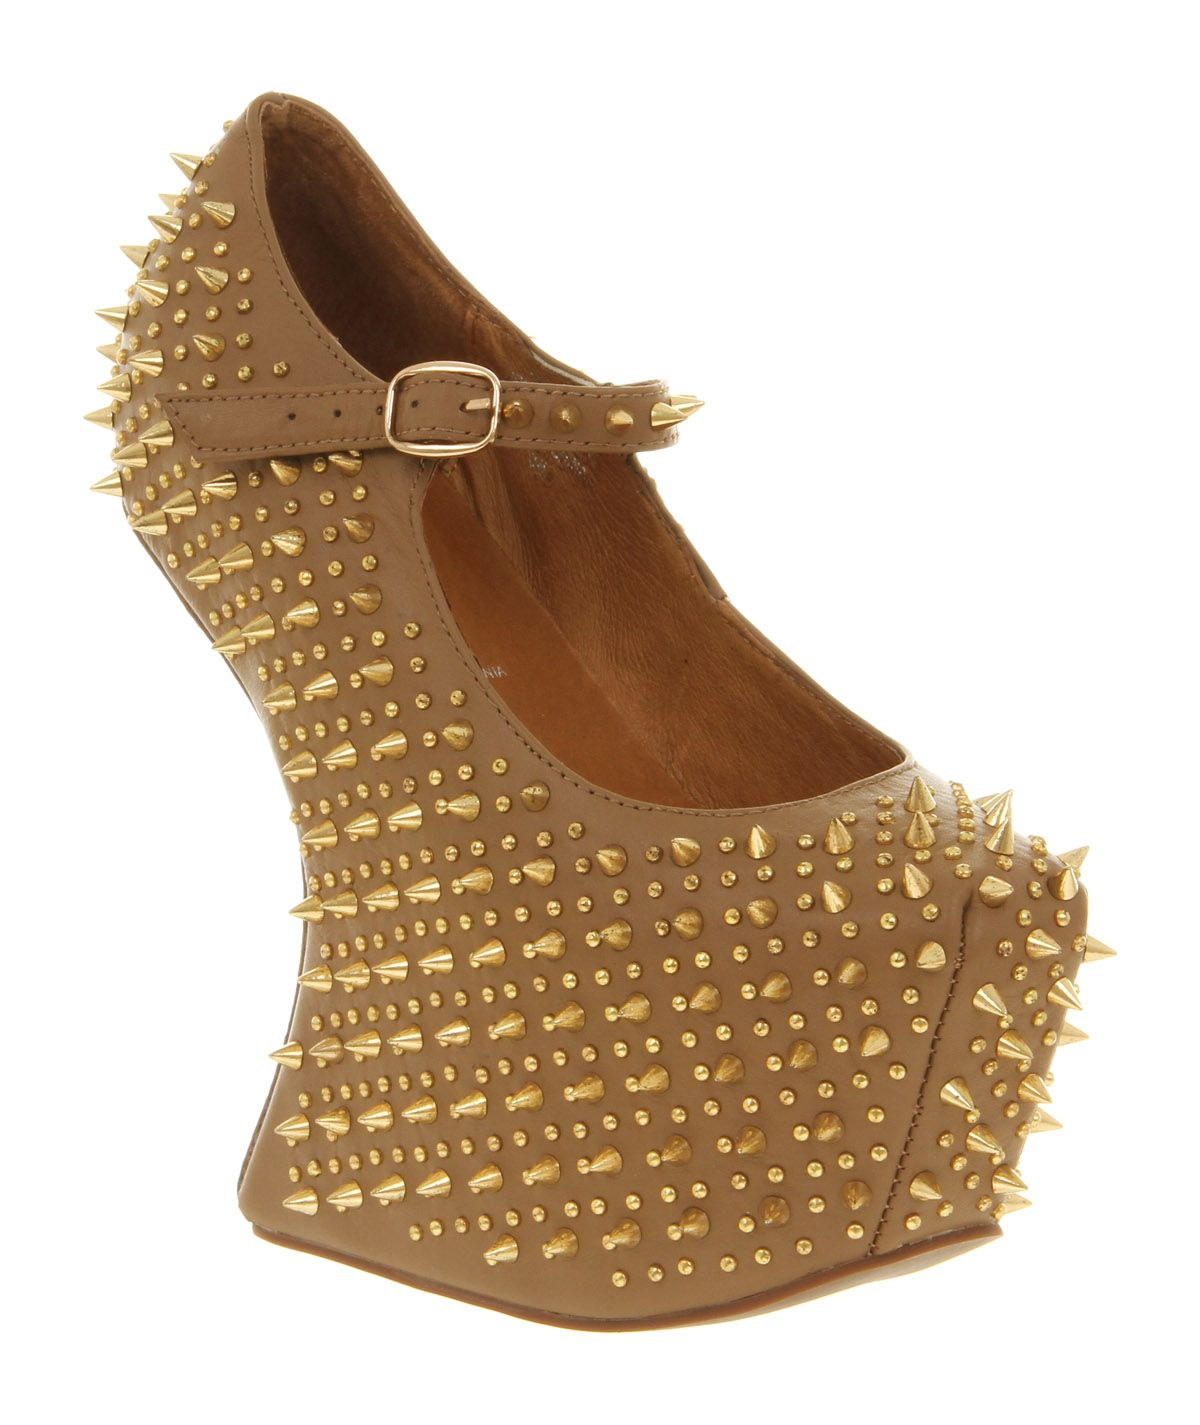 Jeffrey Campbell Prickly Wedge Taupe Leather Gold Spike - High Heels